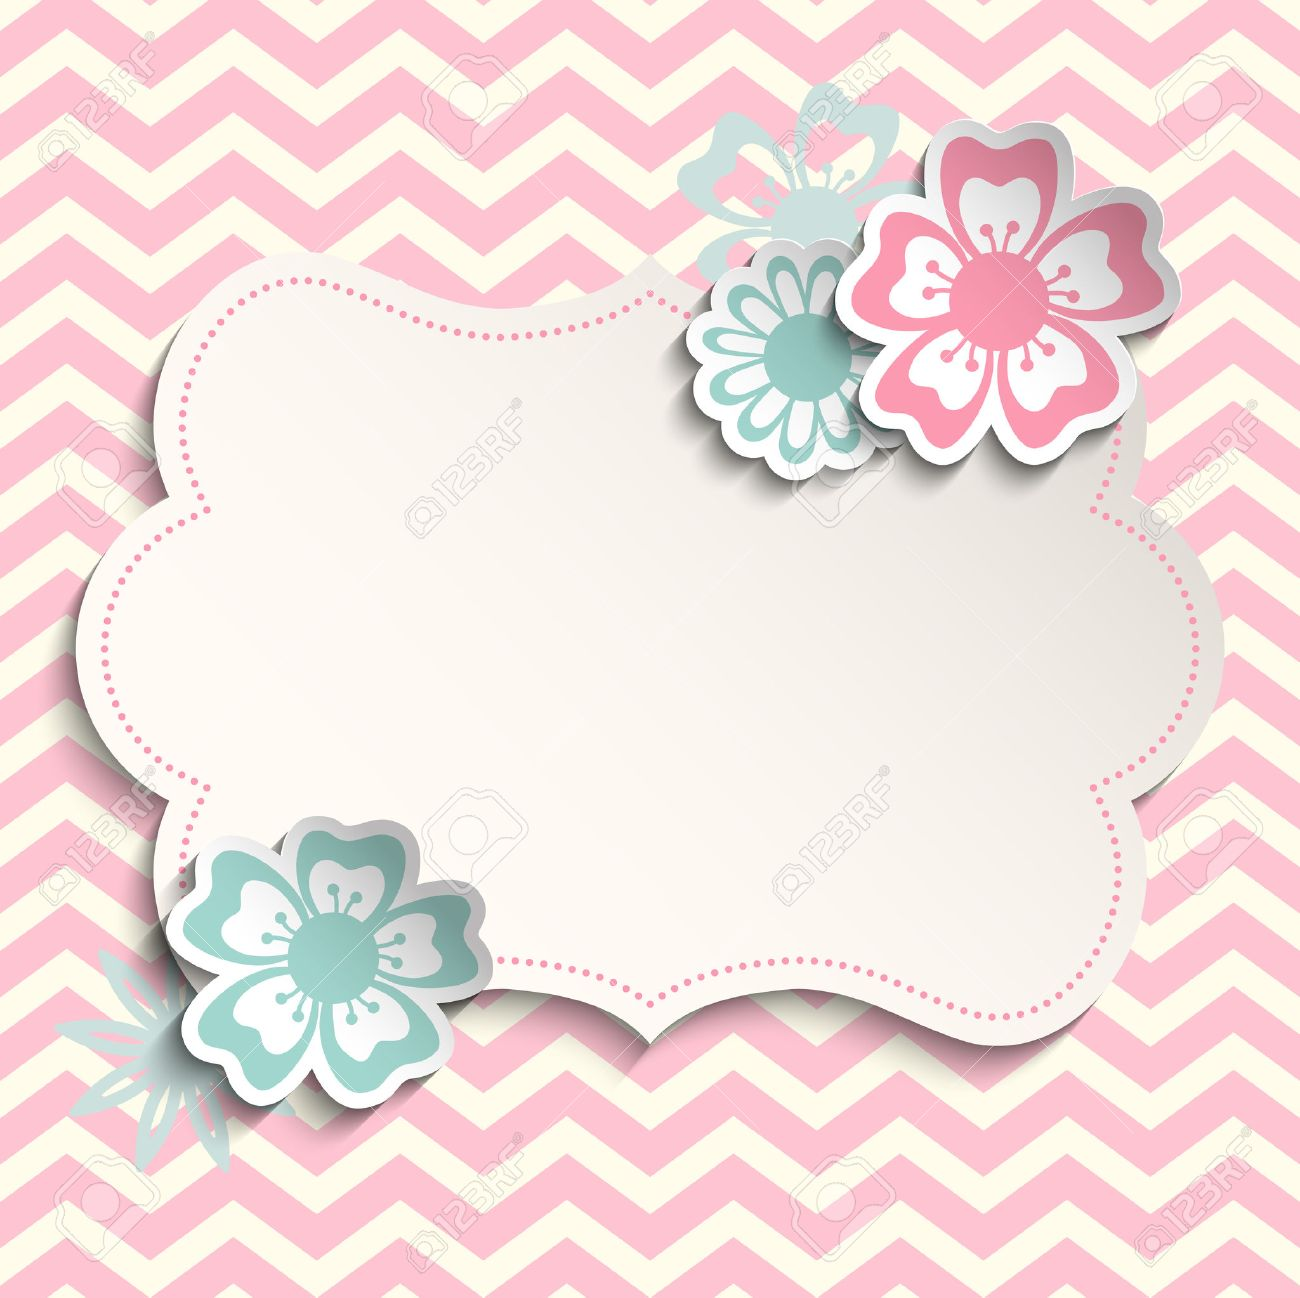 Romantic Shabby Chic Template With Flowers On Pink Chevron Background Can Be Used As